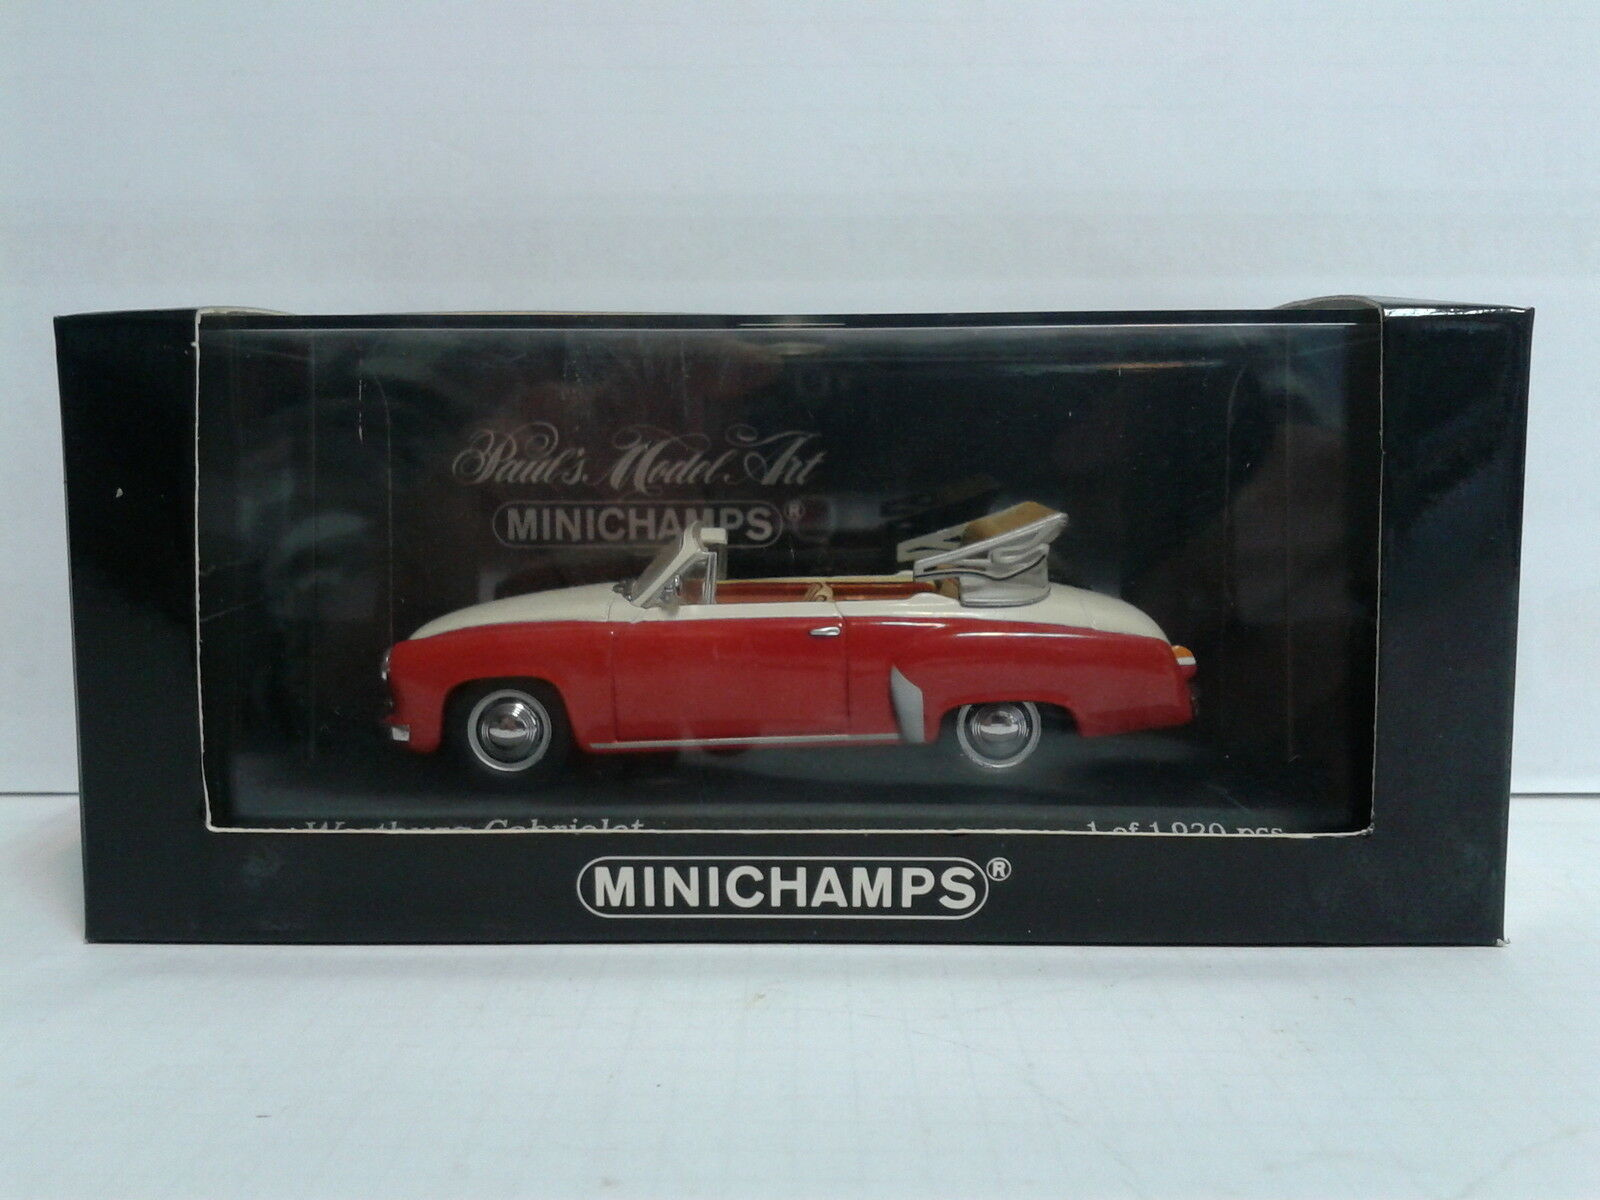 Minichamps 1 43 Wartburg Cabriolet Limited Edition 1 of 1.920 MIB OVP